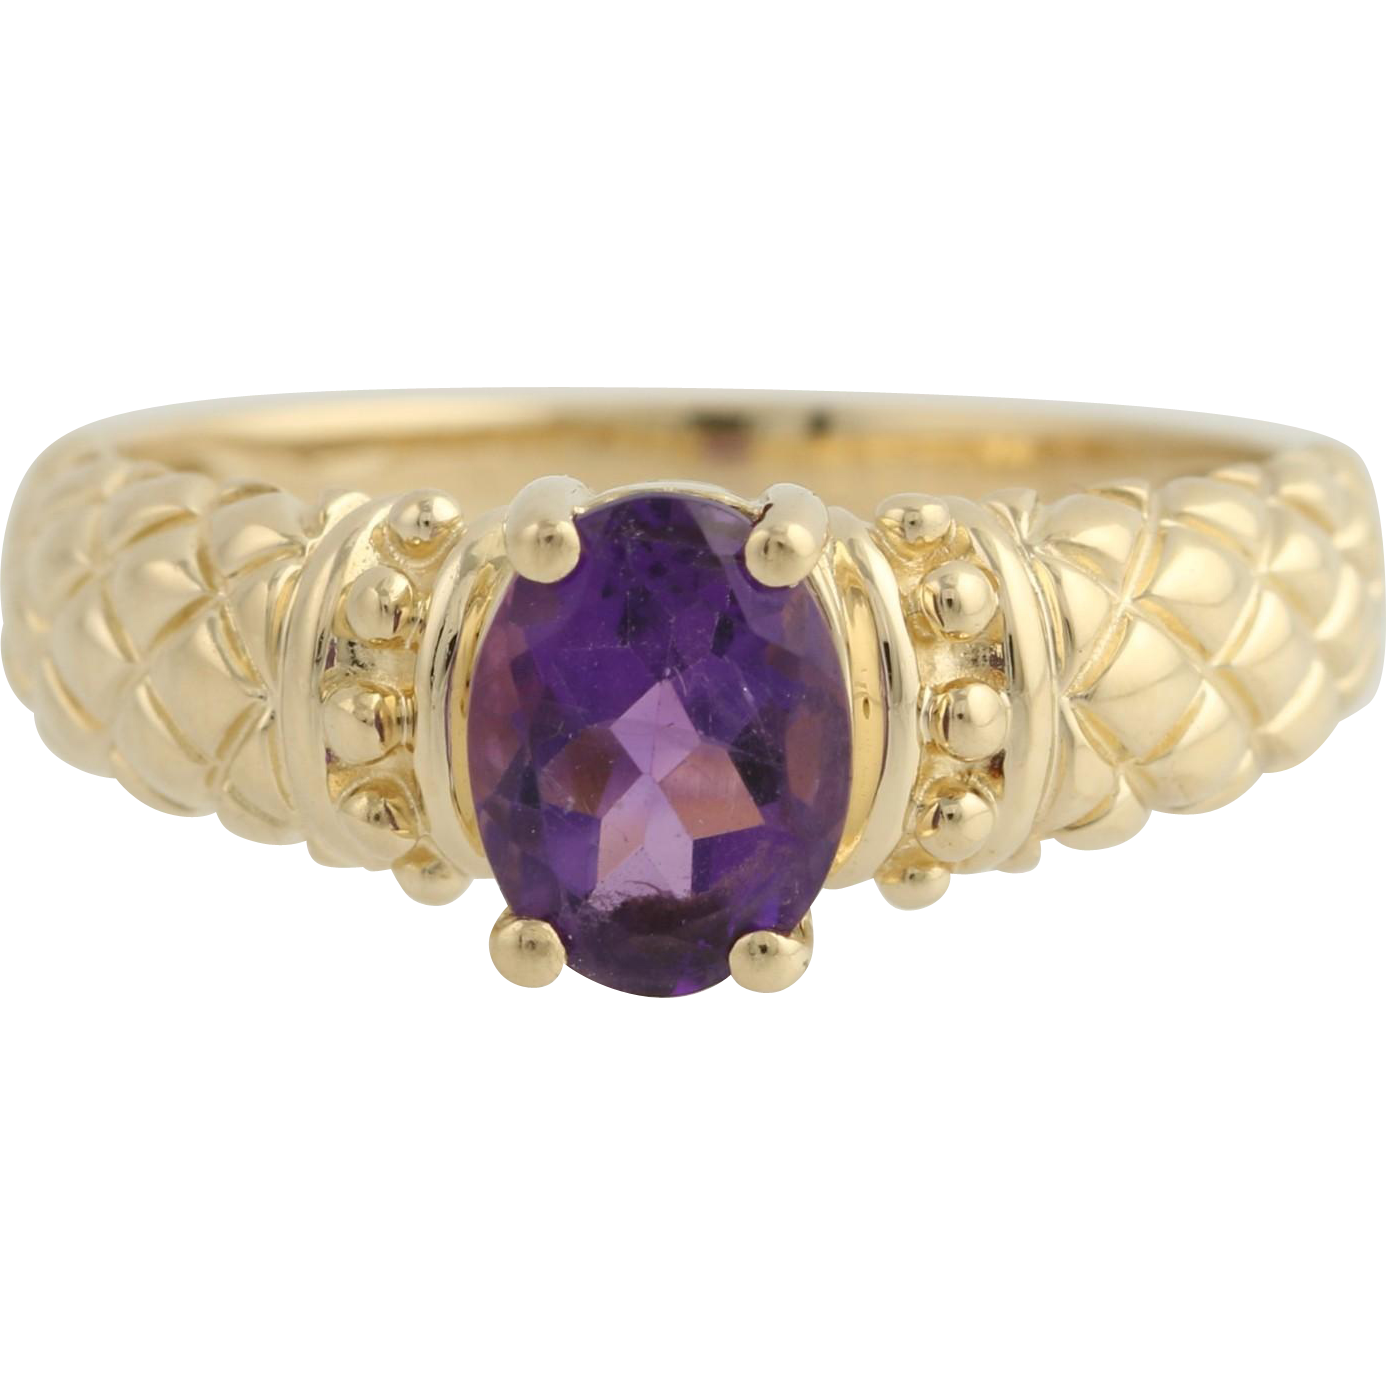 Amethyst Solitaire Ring - 14k Yellow Gold February Birthstone Genuine 1.25ctw